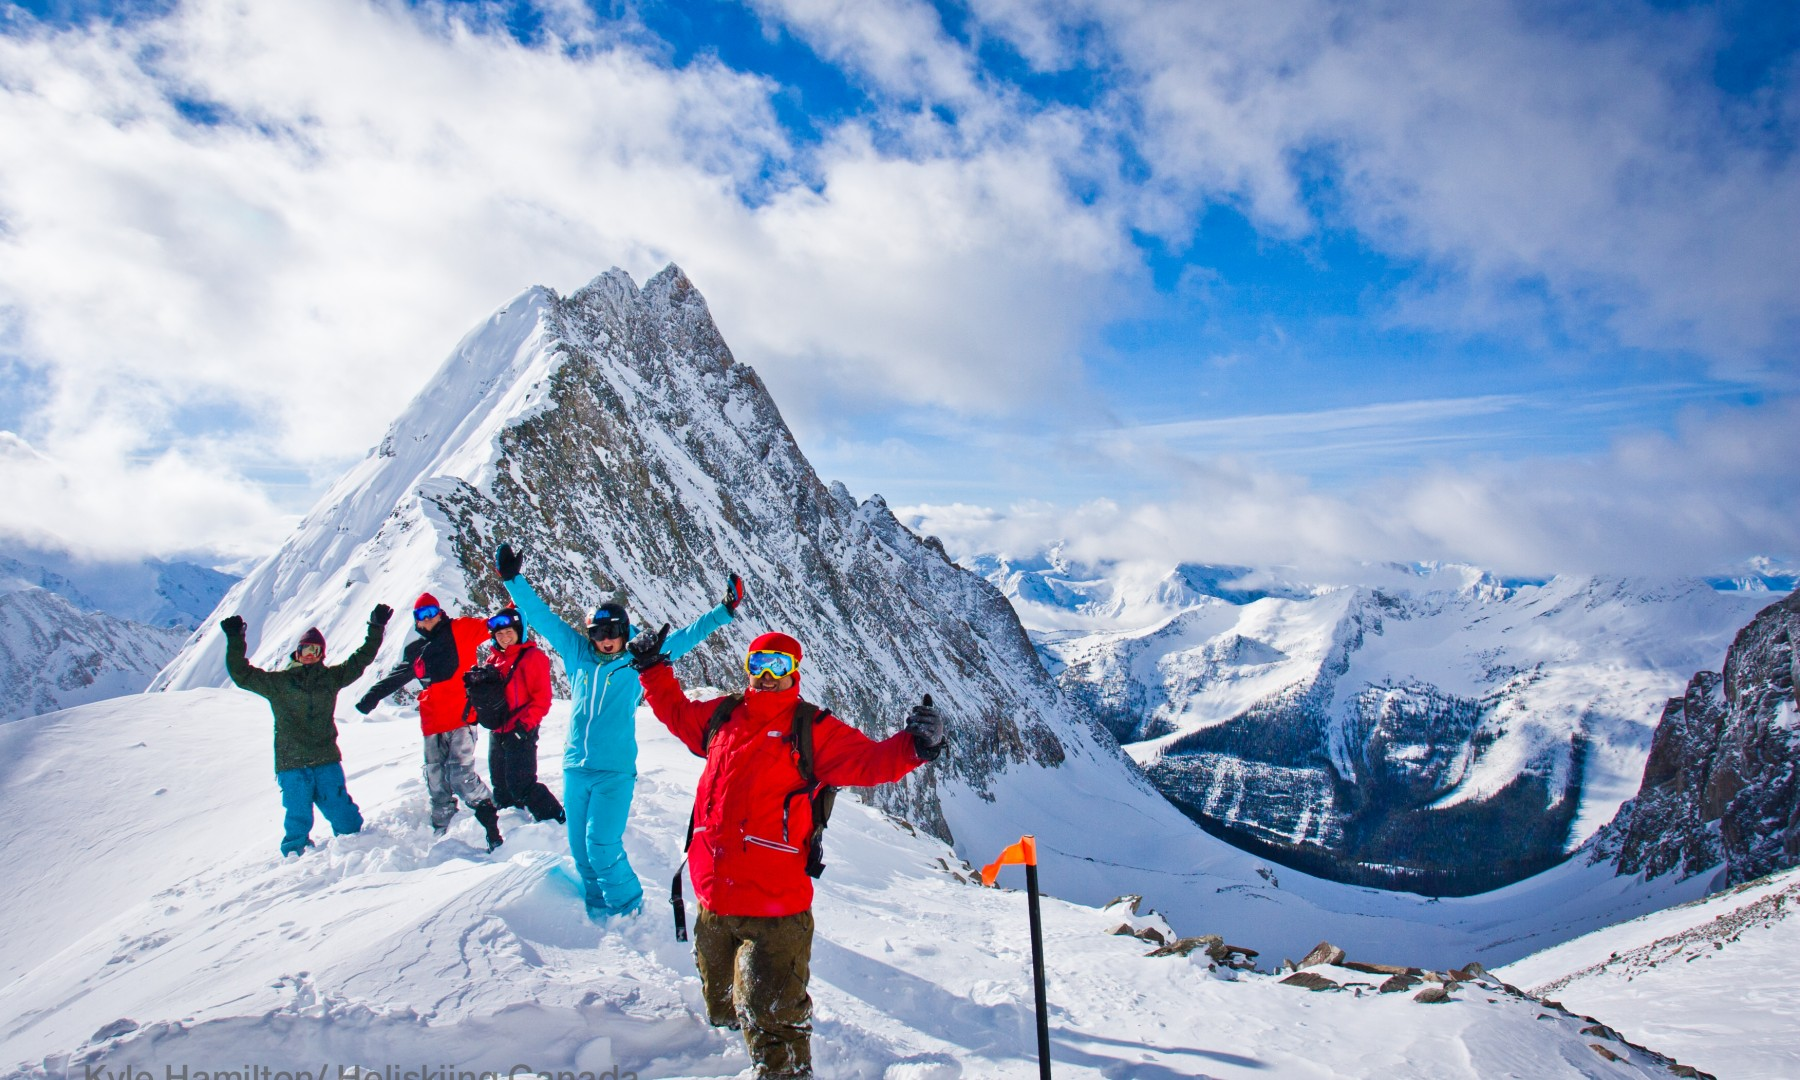 heli-skiing group waving on top of mountain in canada